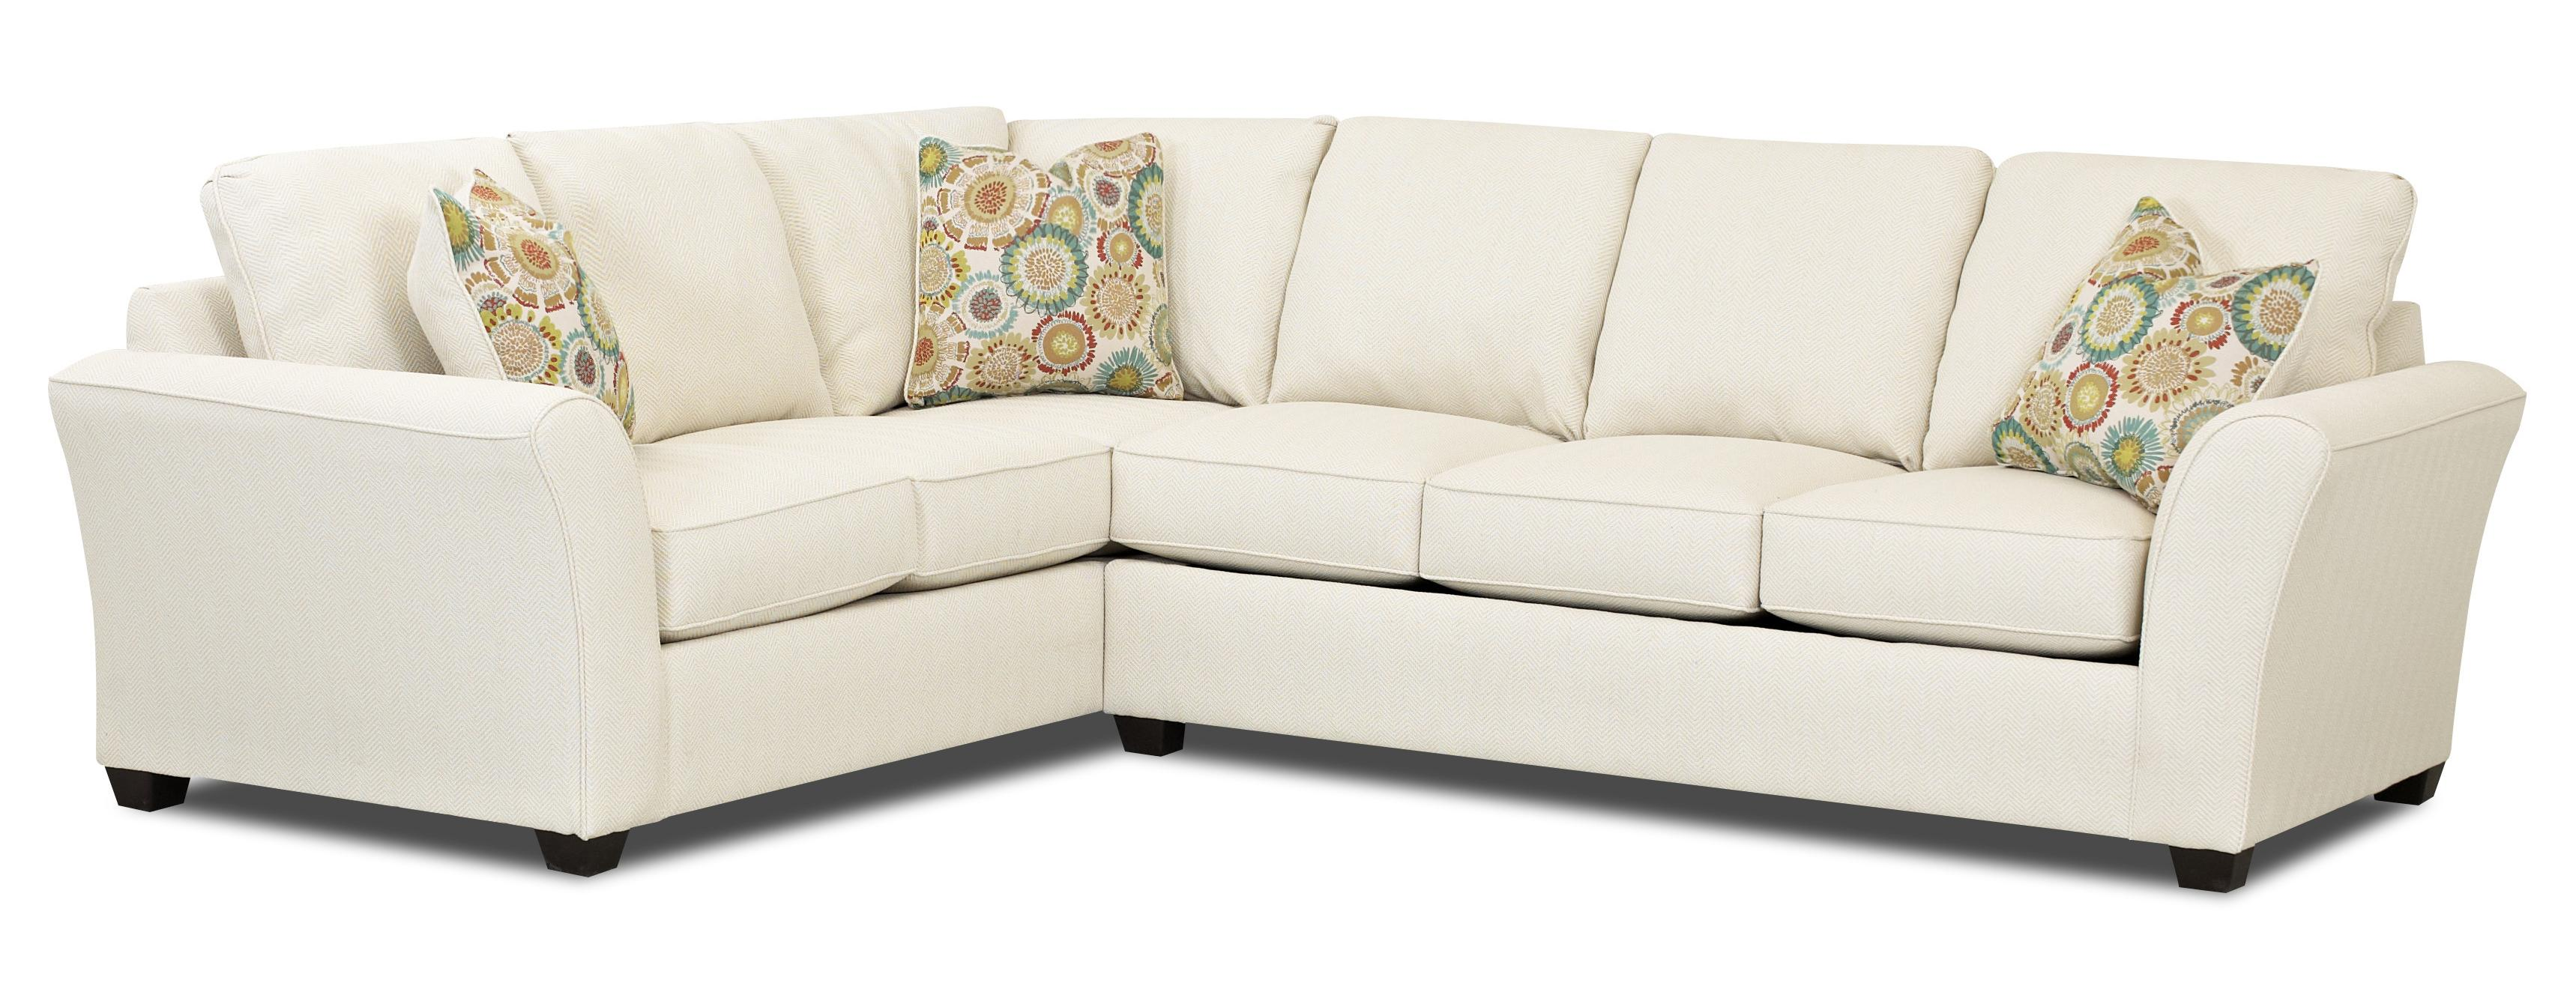 Sectional Sleeper Sofa : Transitional sectional sleeper sofa with dreamquest